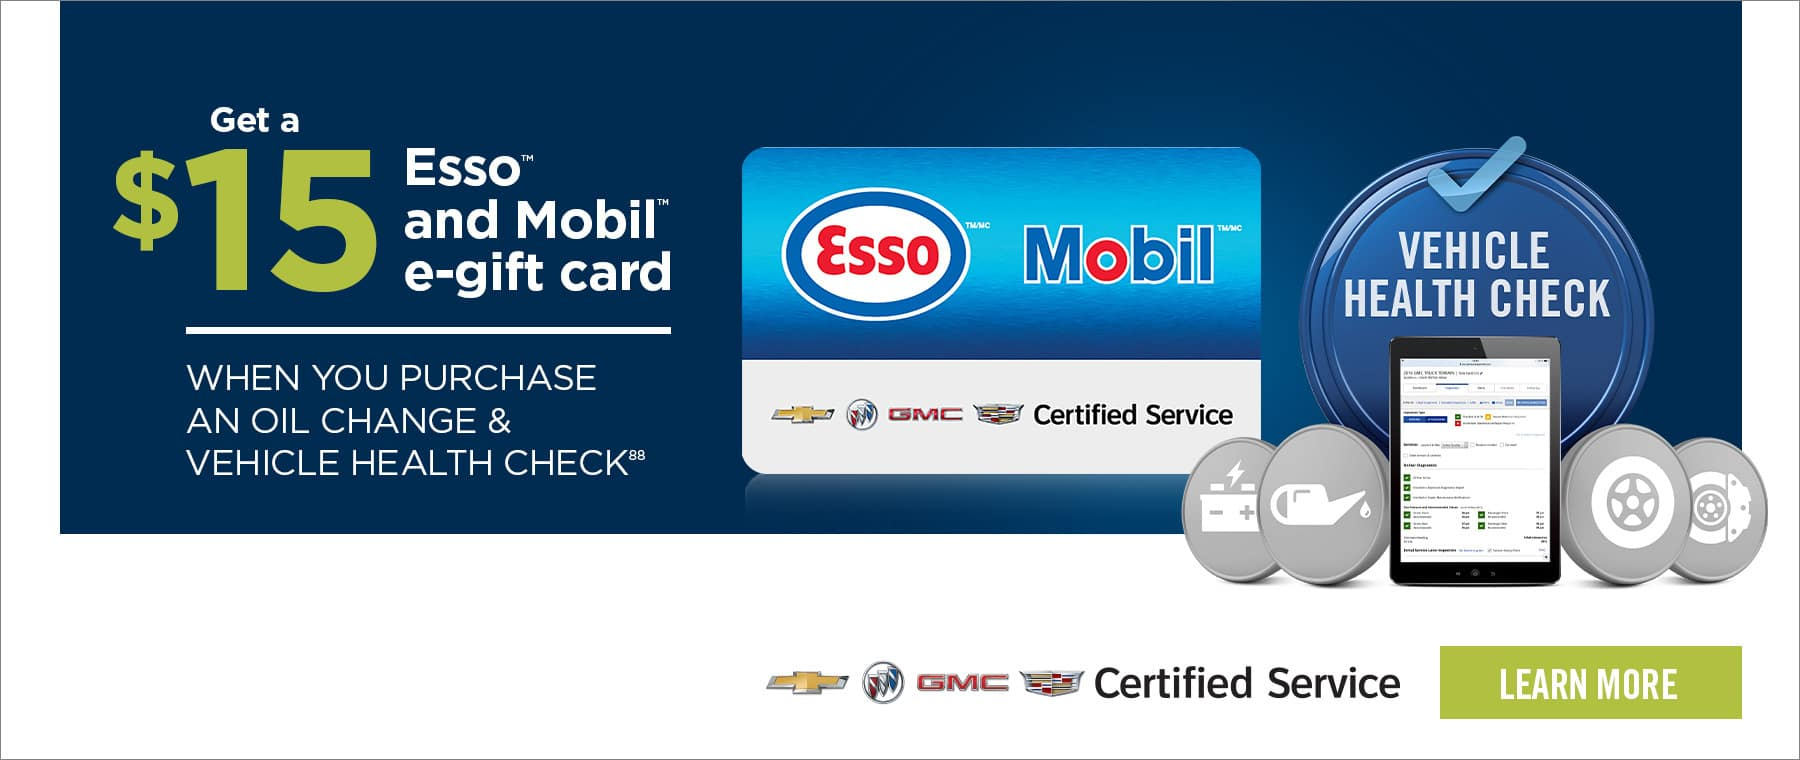 Esso Offer, T3_1800x760